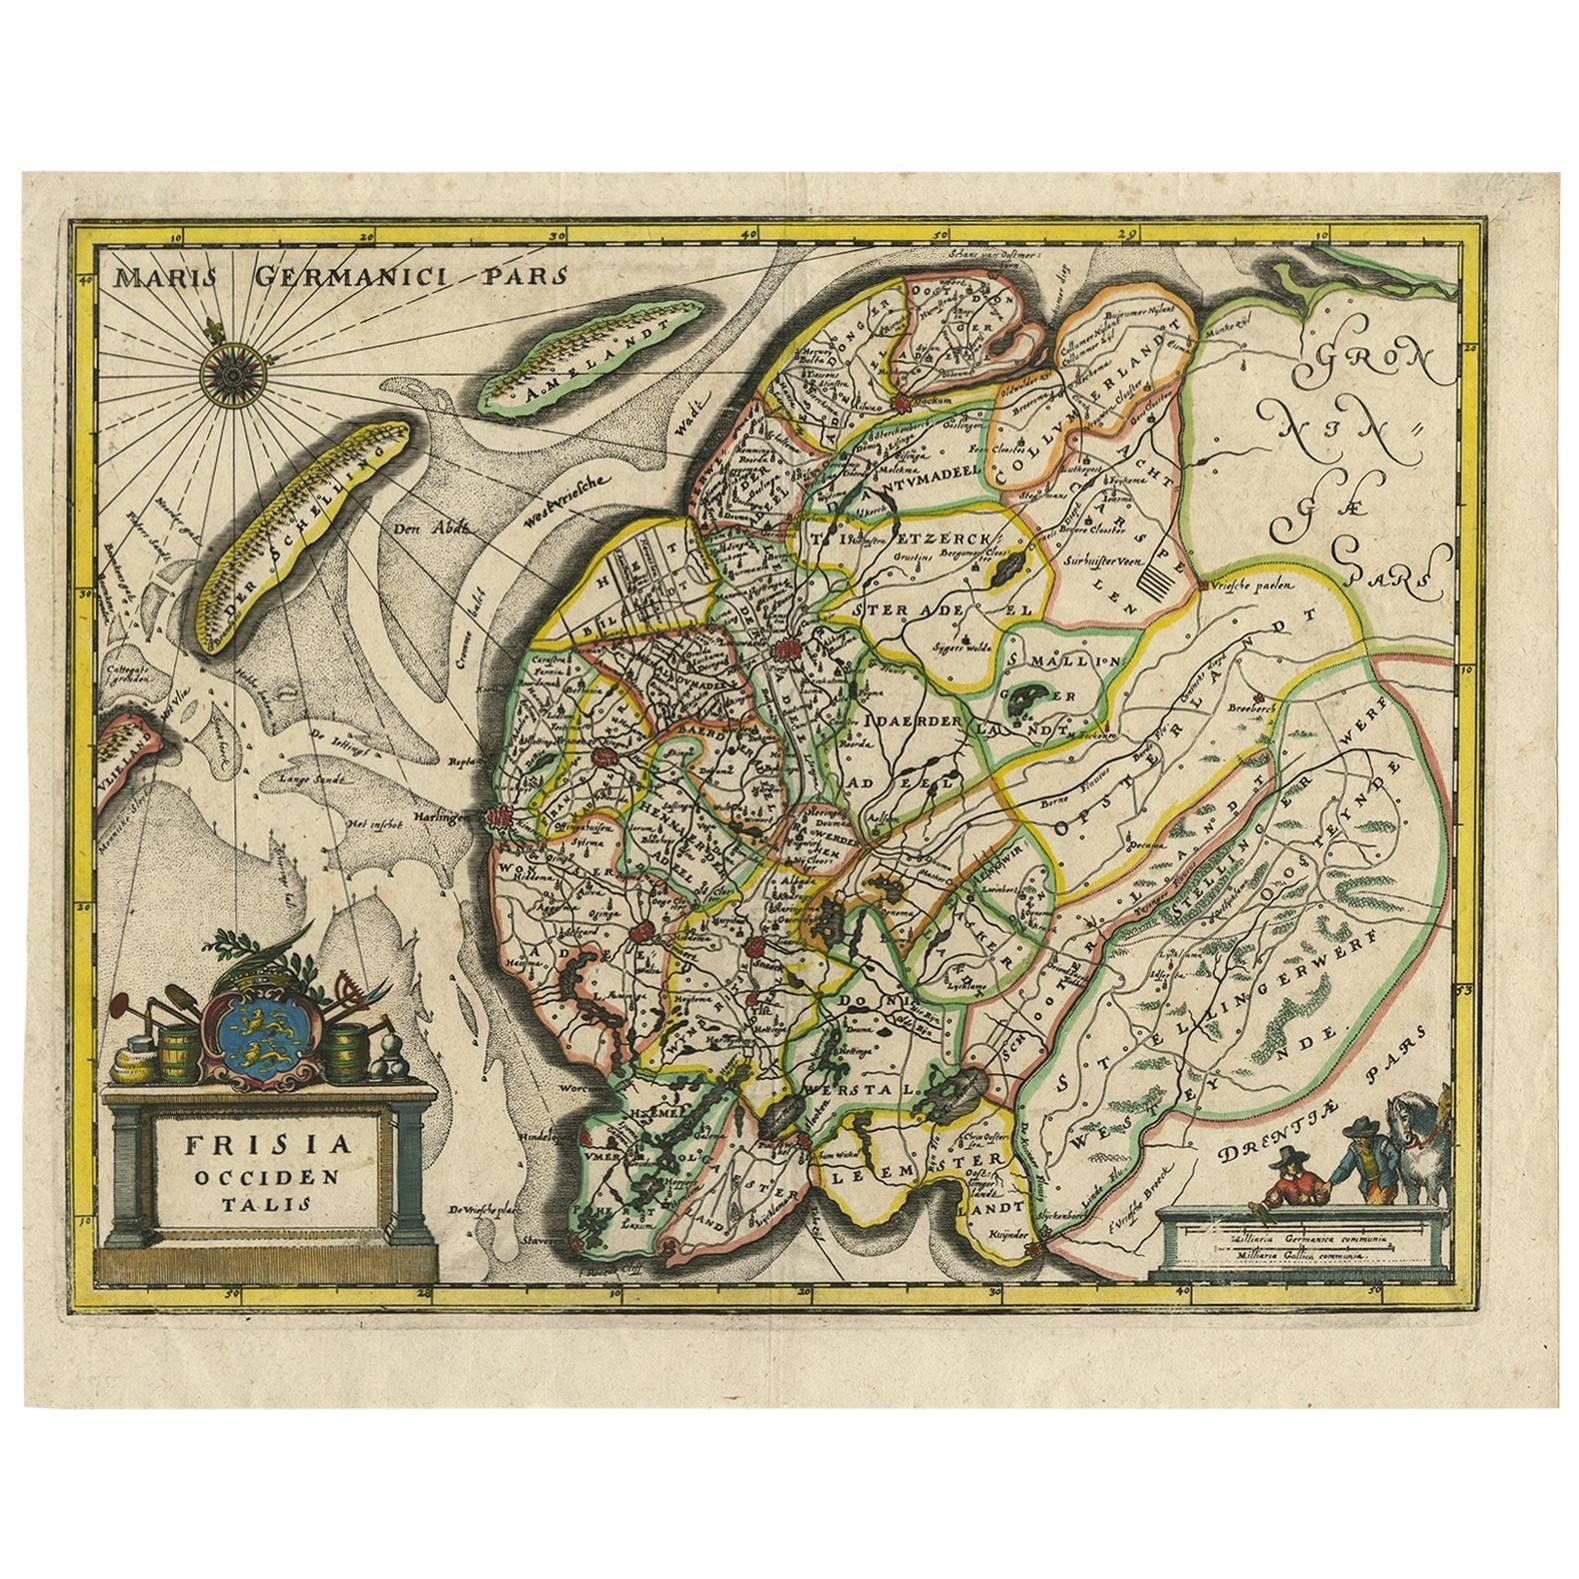 Antique Map of Friesland 'The Netherlands' by C. Merian, 1659